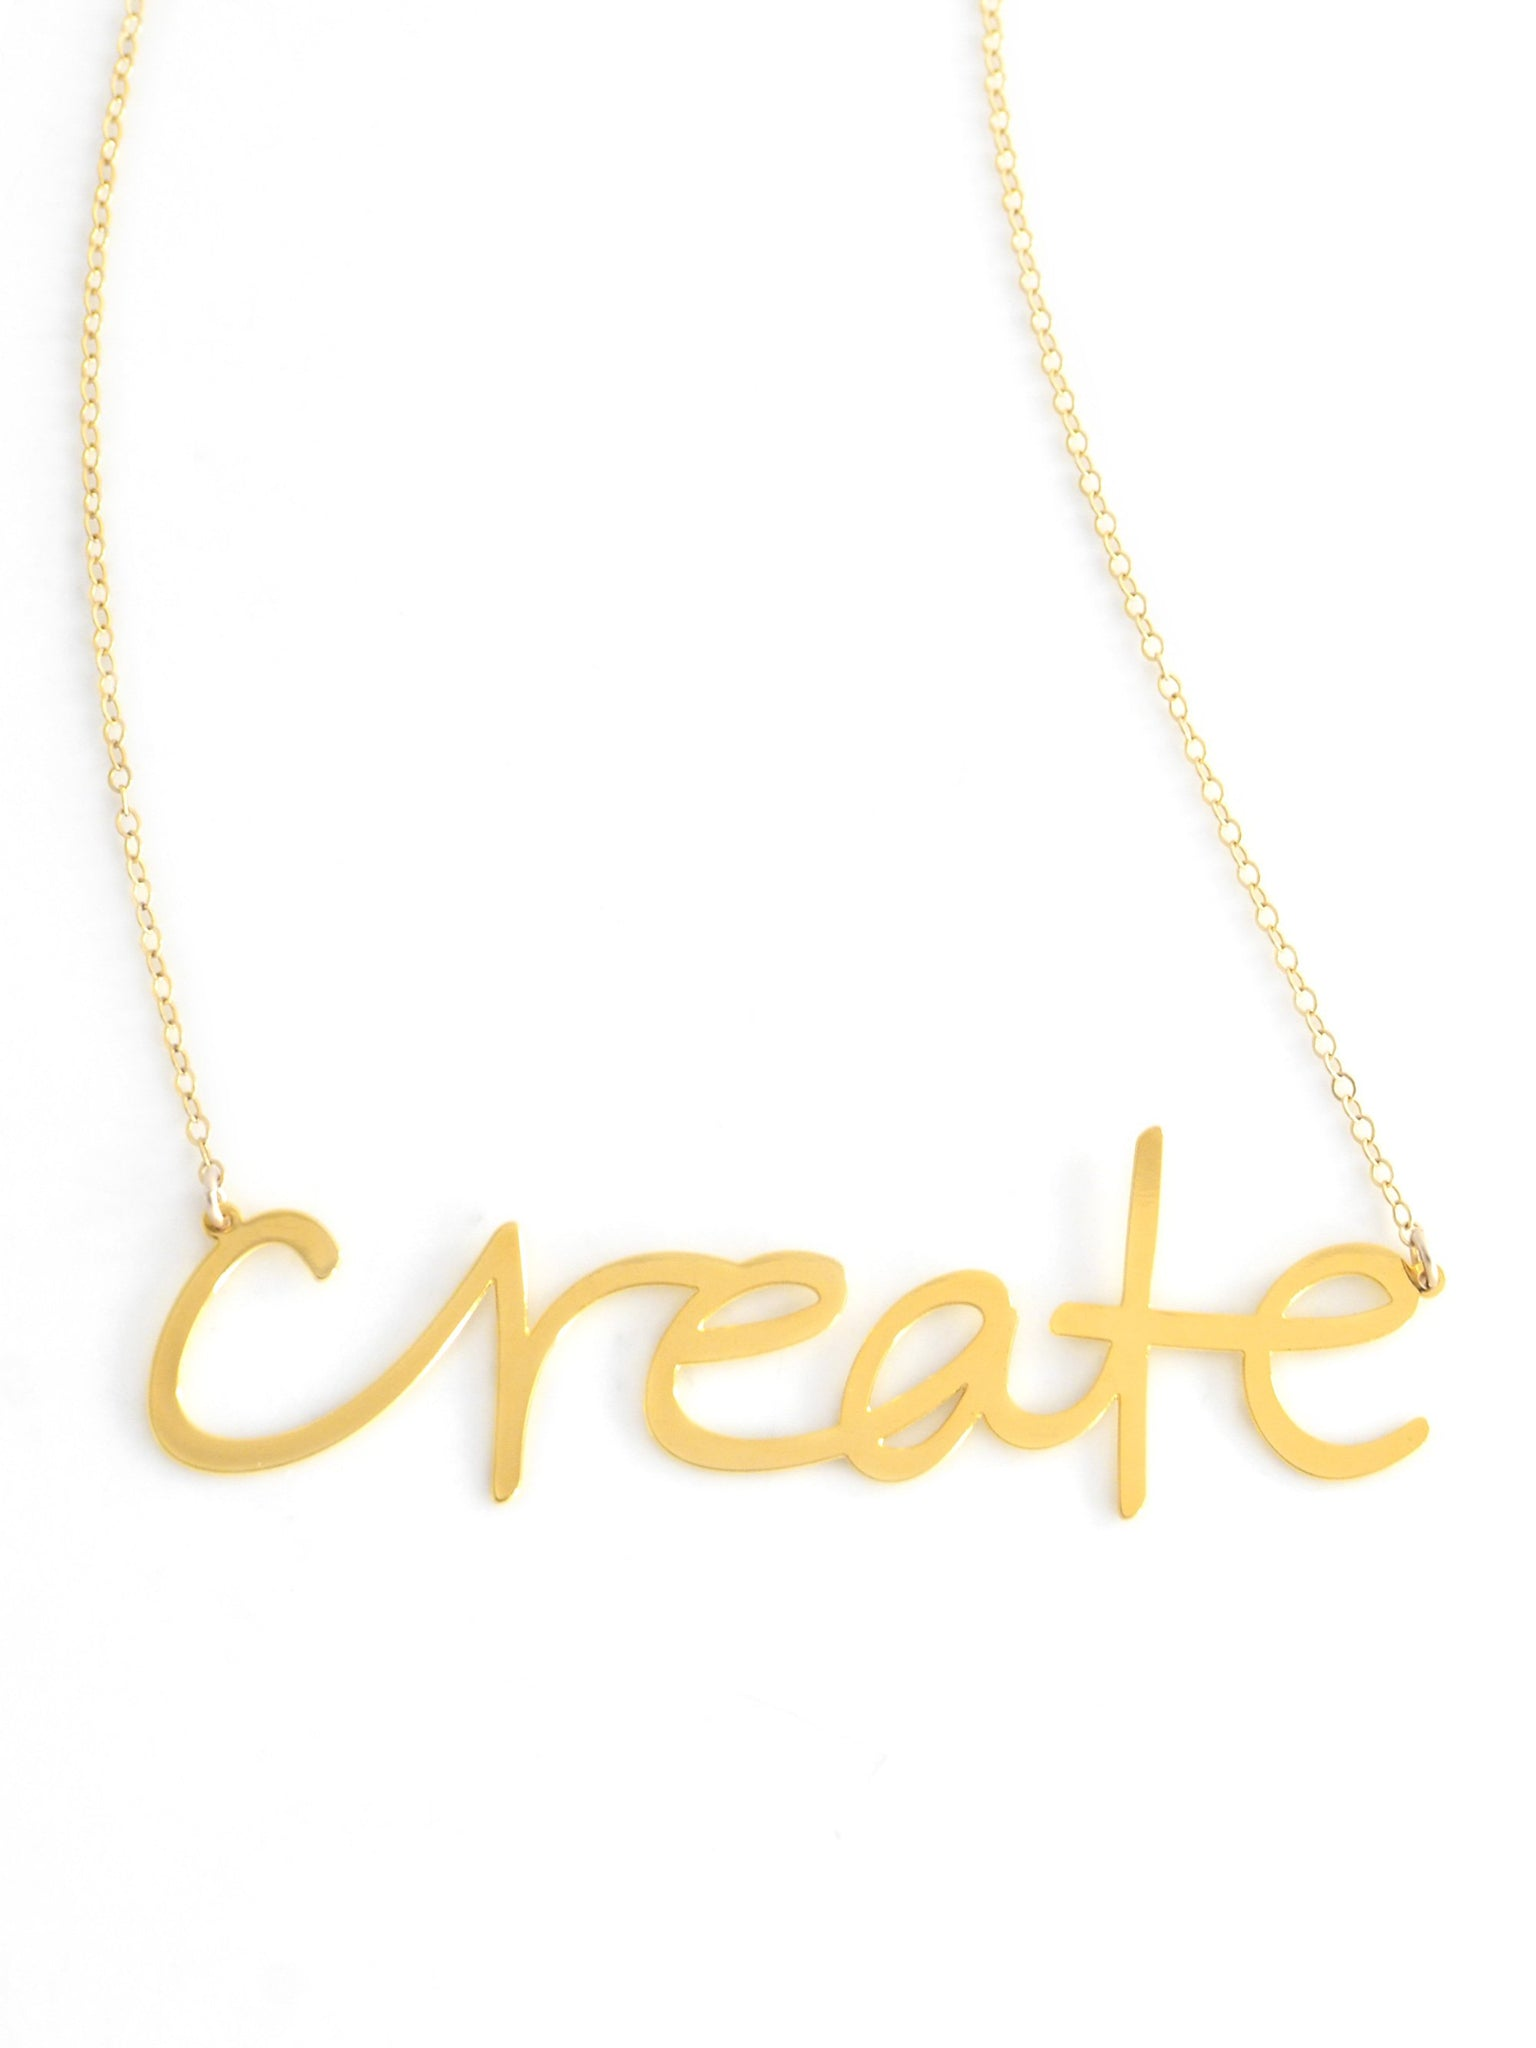 Create Necklace - Brevity Jewelry - Made in USA - Affordable Gold and Silver Jewelry